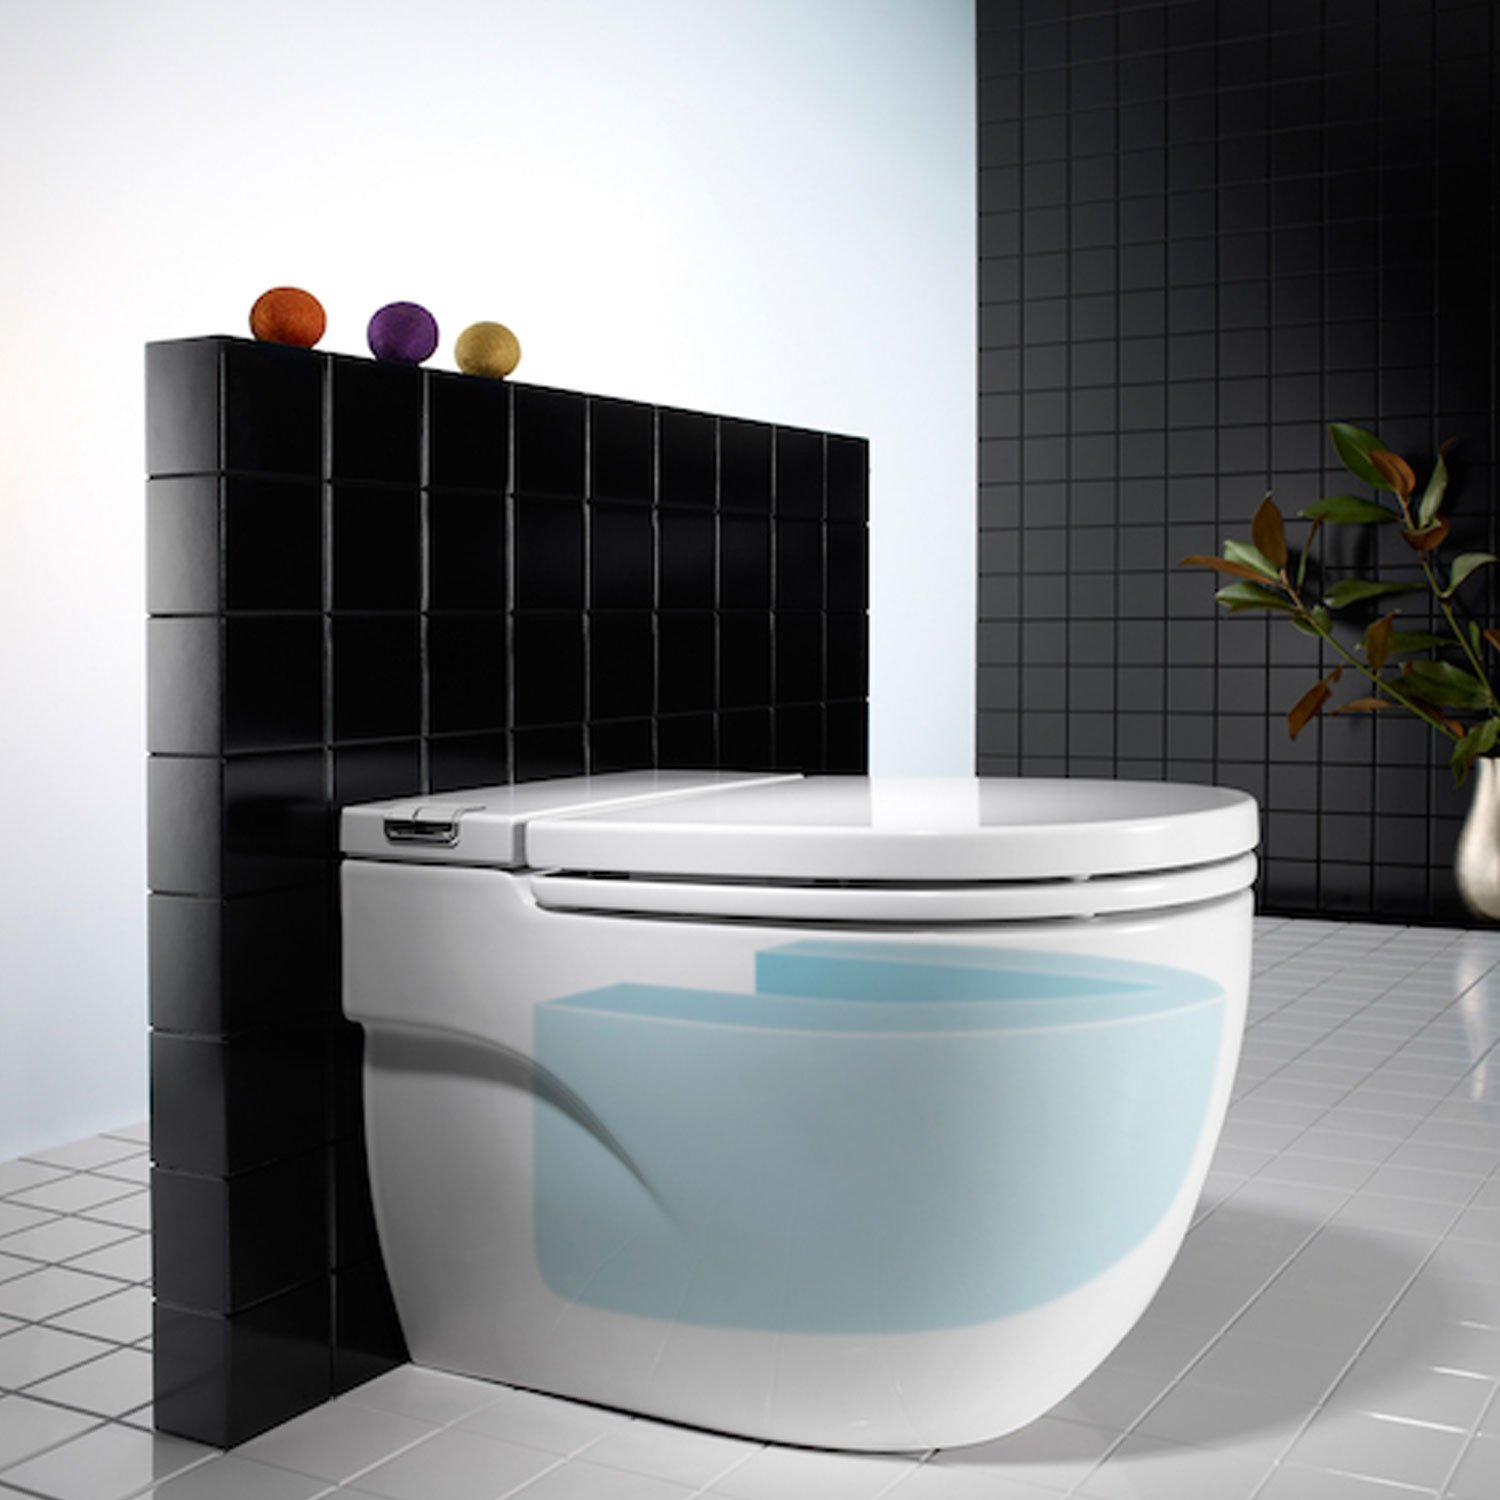 Roca meridian n toilet 893303000 back to wall white for Wc roca meridian